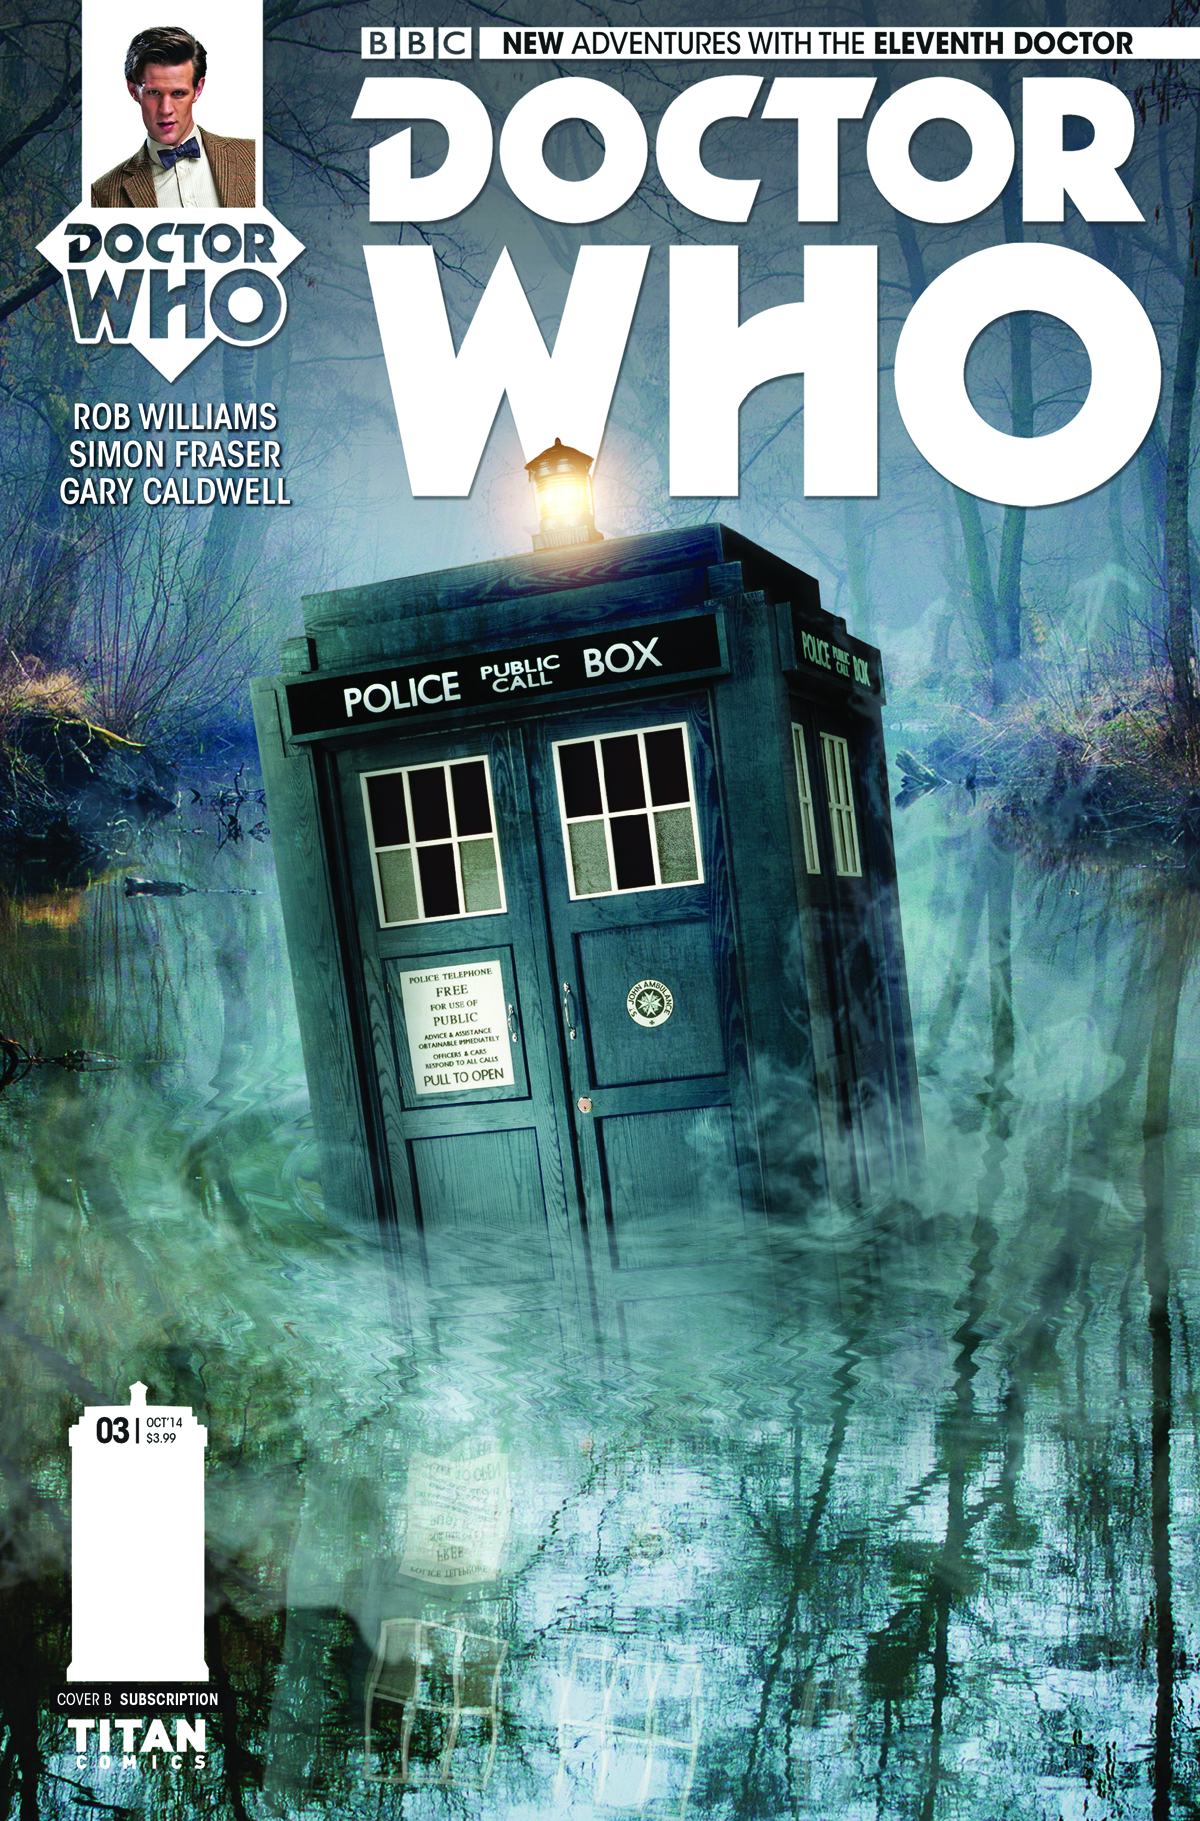 DOCTOR WHO 11TH #3 SUBSCRIPTION PHOTO